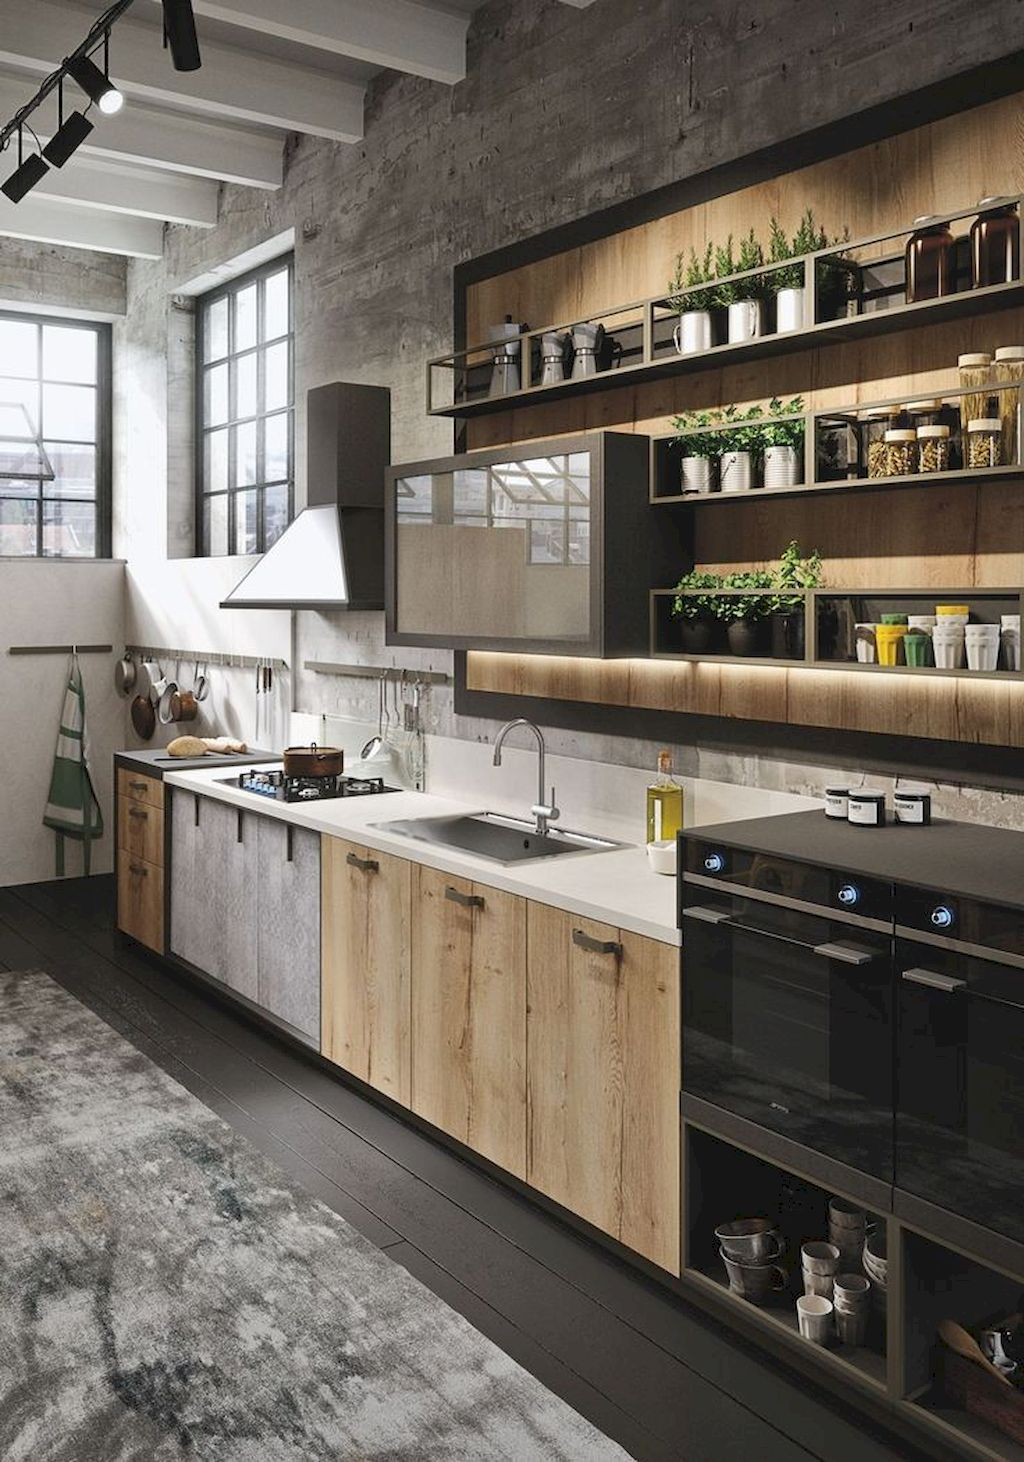 Best Kitchen Design Ideas 2018 50 Trending Kitchen Ideas You Will Really Want It Now Elonahome